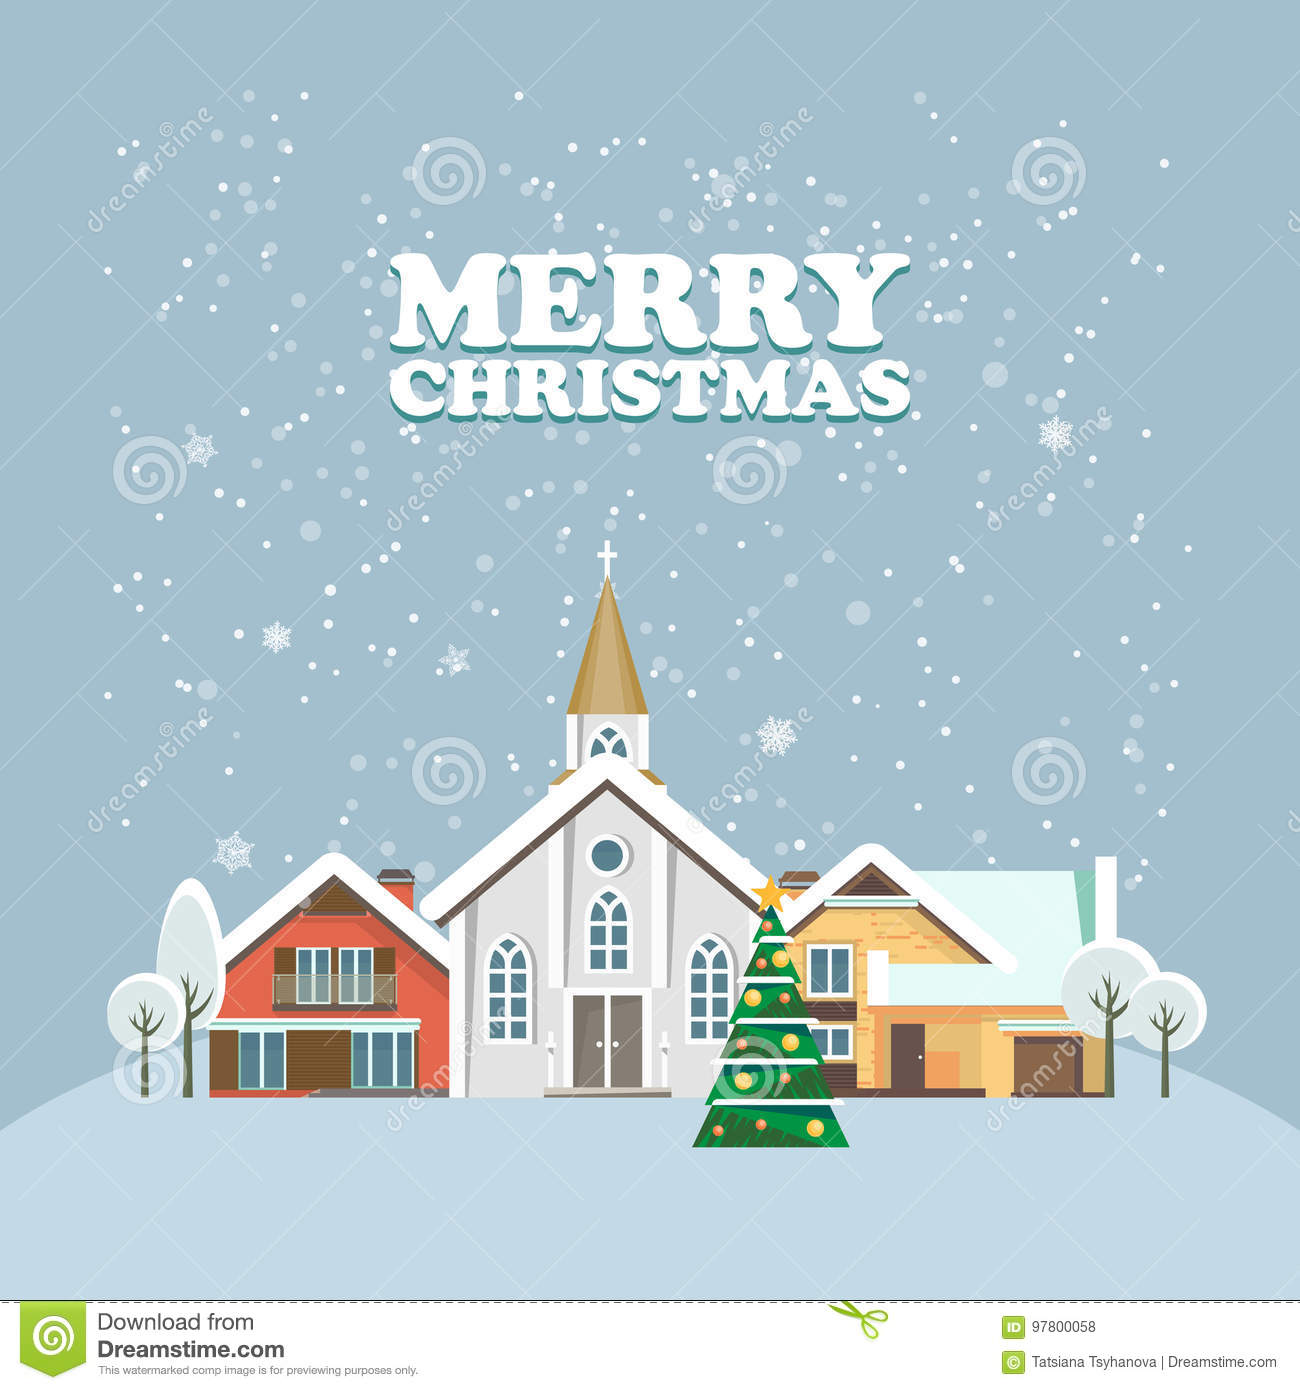 Merry christmas and a happy new year vector greeting card in modern merry christmas and a happy new year vector greeting card in modern flat design christmas town snowy landscape kristyandbryce Gallery